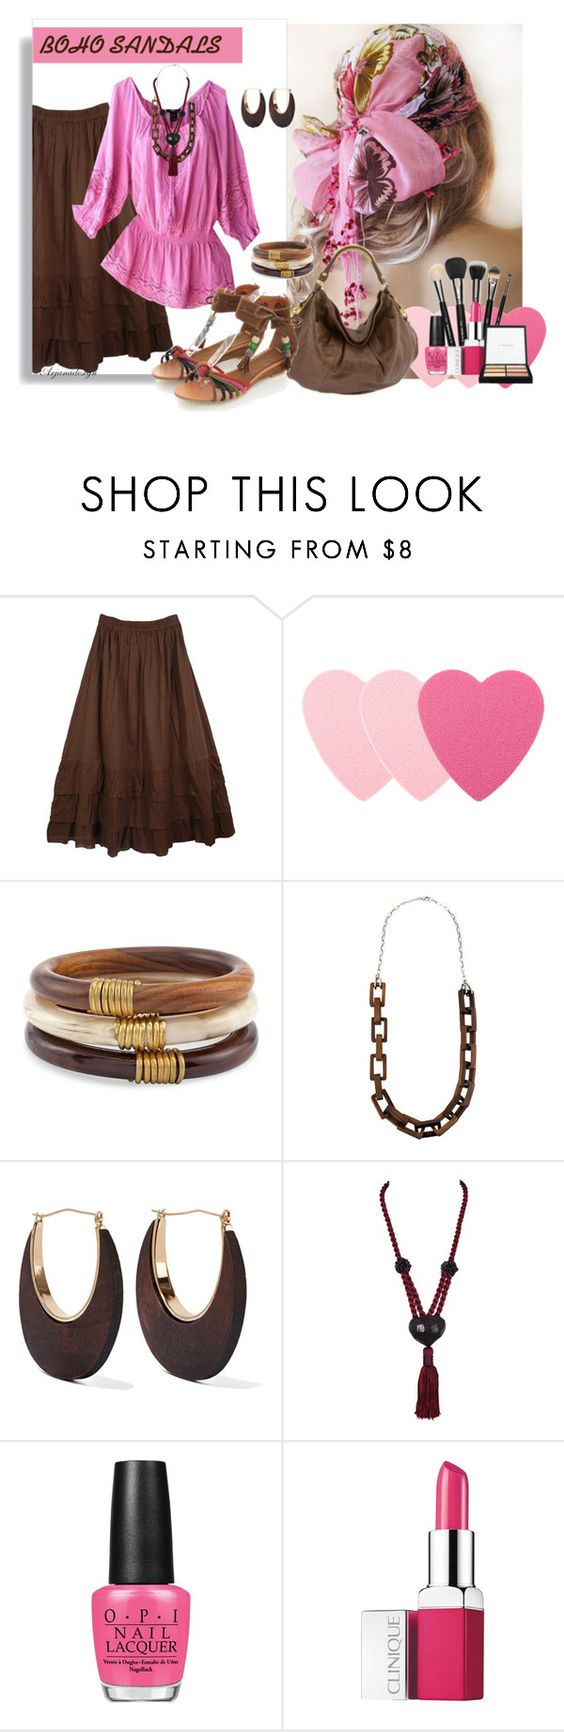 """BOHEMIAN SANDALS"" by arjanadesign ❤ liked on Polyvore featuring Sephora Collection, Chico's, Michael Kors, Kenneth Jay Lane, Yves Saint Laurent, OPI and Clinique"